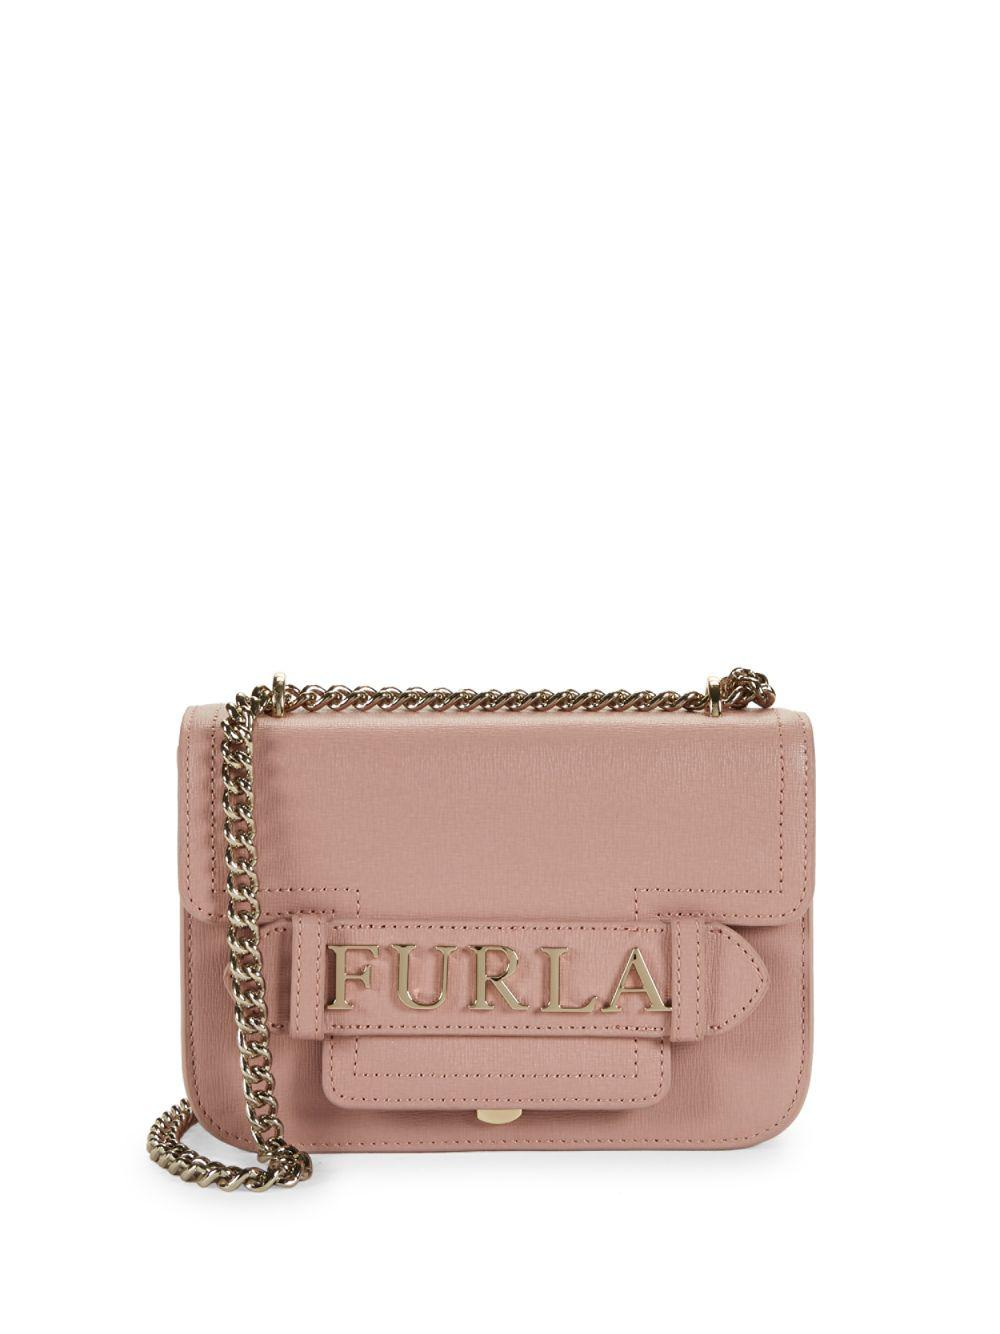 Furla. Women s Mini Carol Leather Chain Crossbody Bag 060c04cc5a1f5